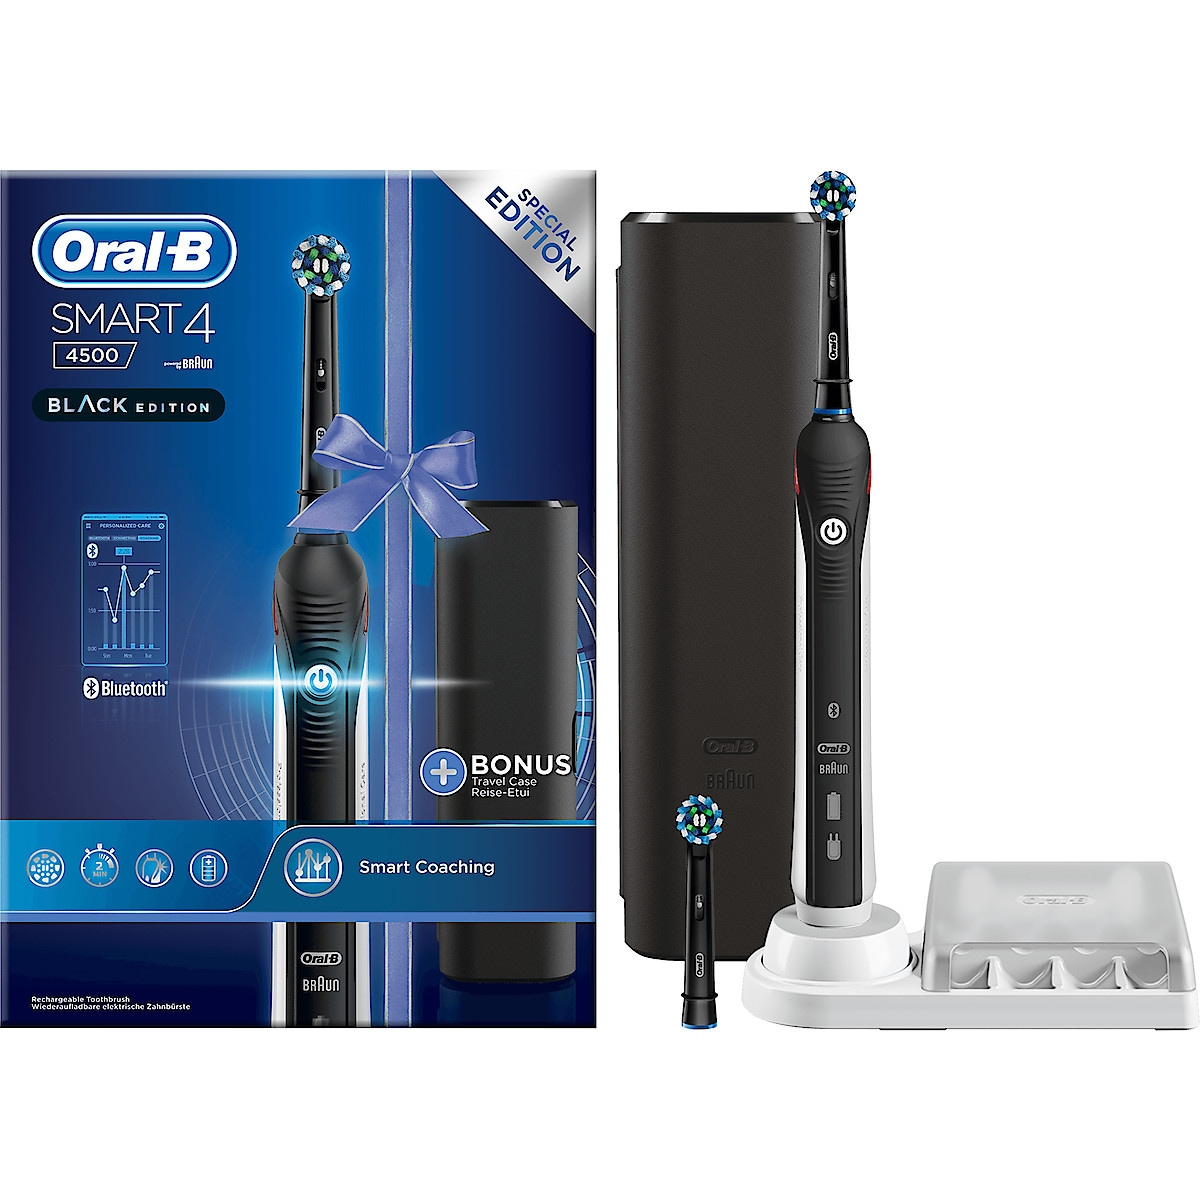 Sähköhammasharja Oral-B Smart 4, 4500 Black